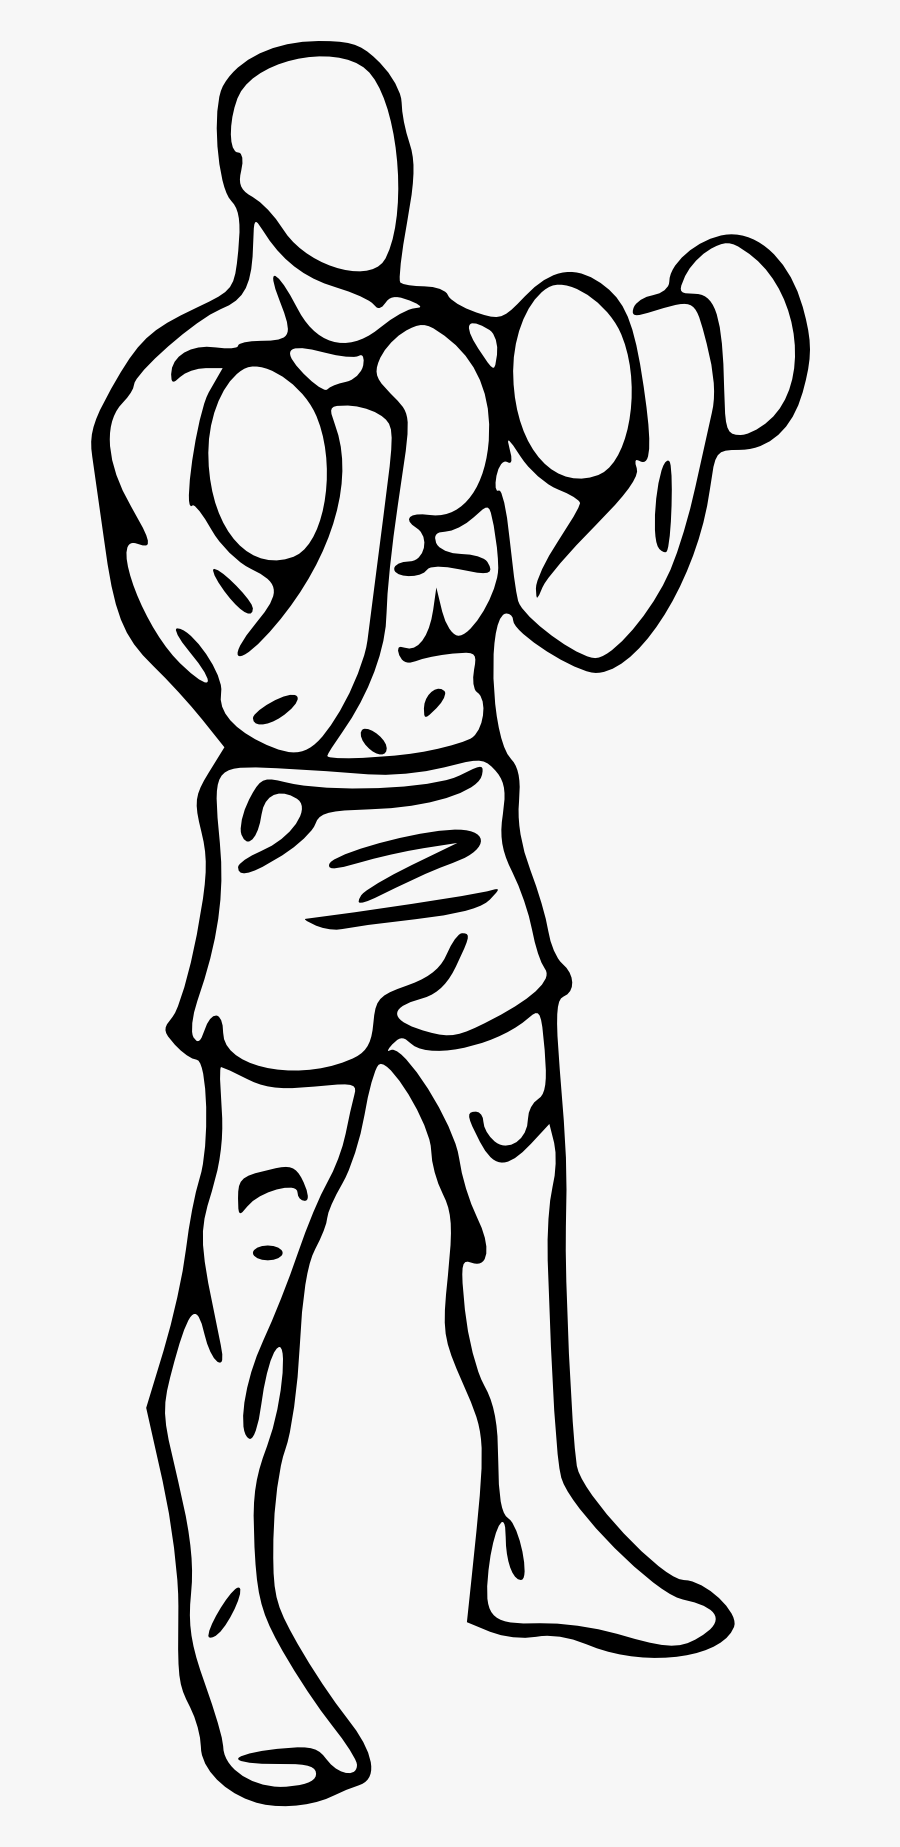 Muscle Clipart Bicep Curl - Dumbbell Bicep Curl Drawing, Transparent Clipart